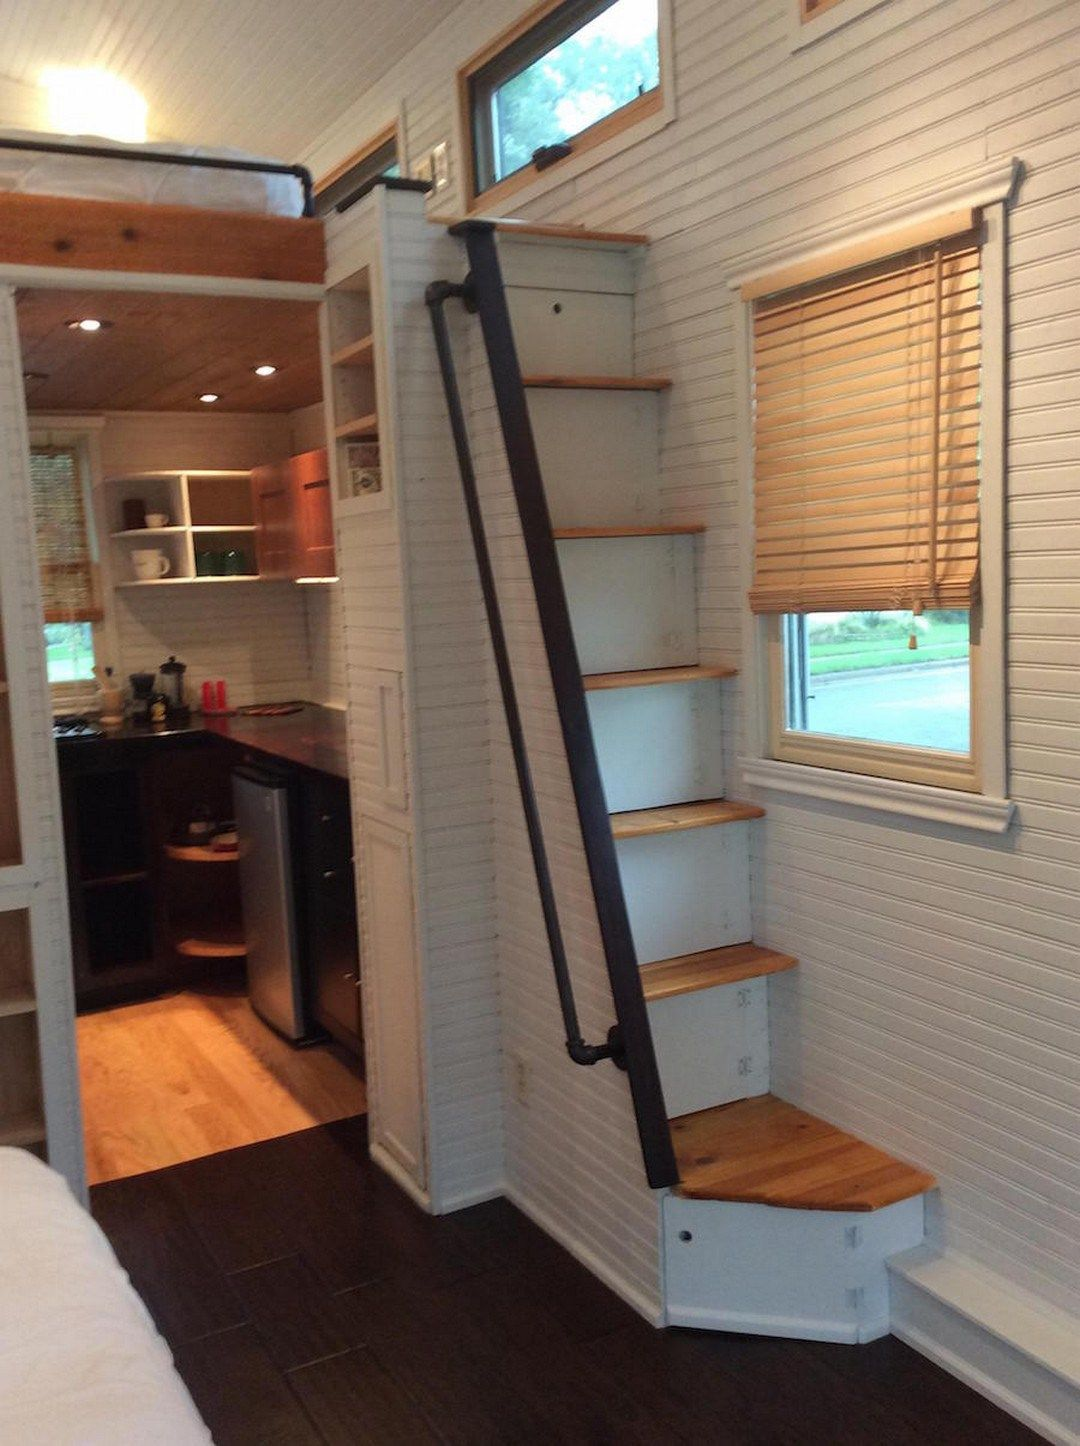 Diy Tiny House Storage And Organization Ideas On A Budget 7 In 2018